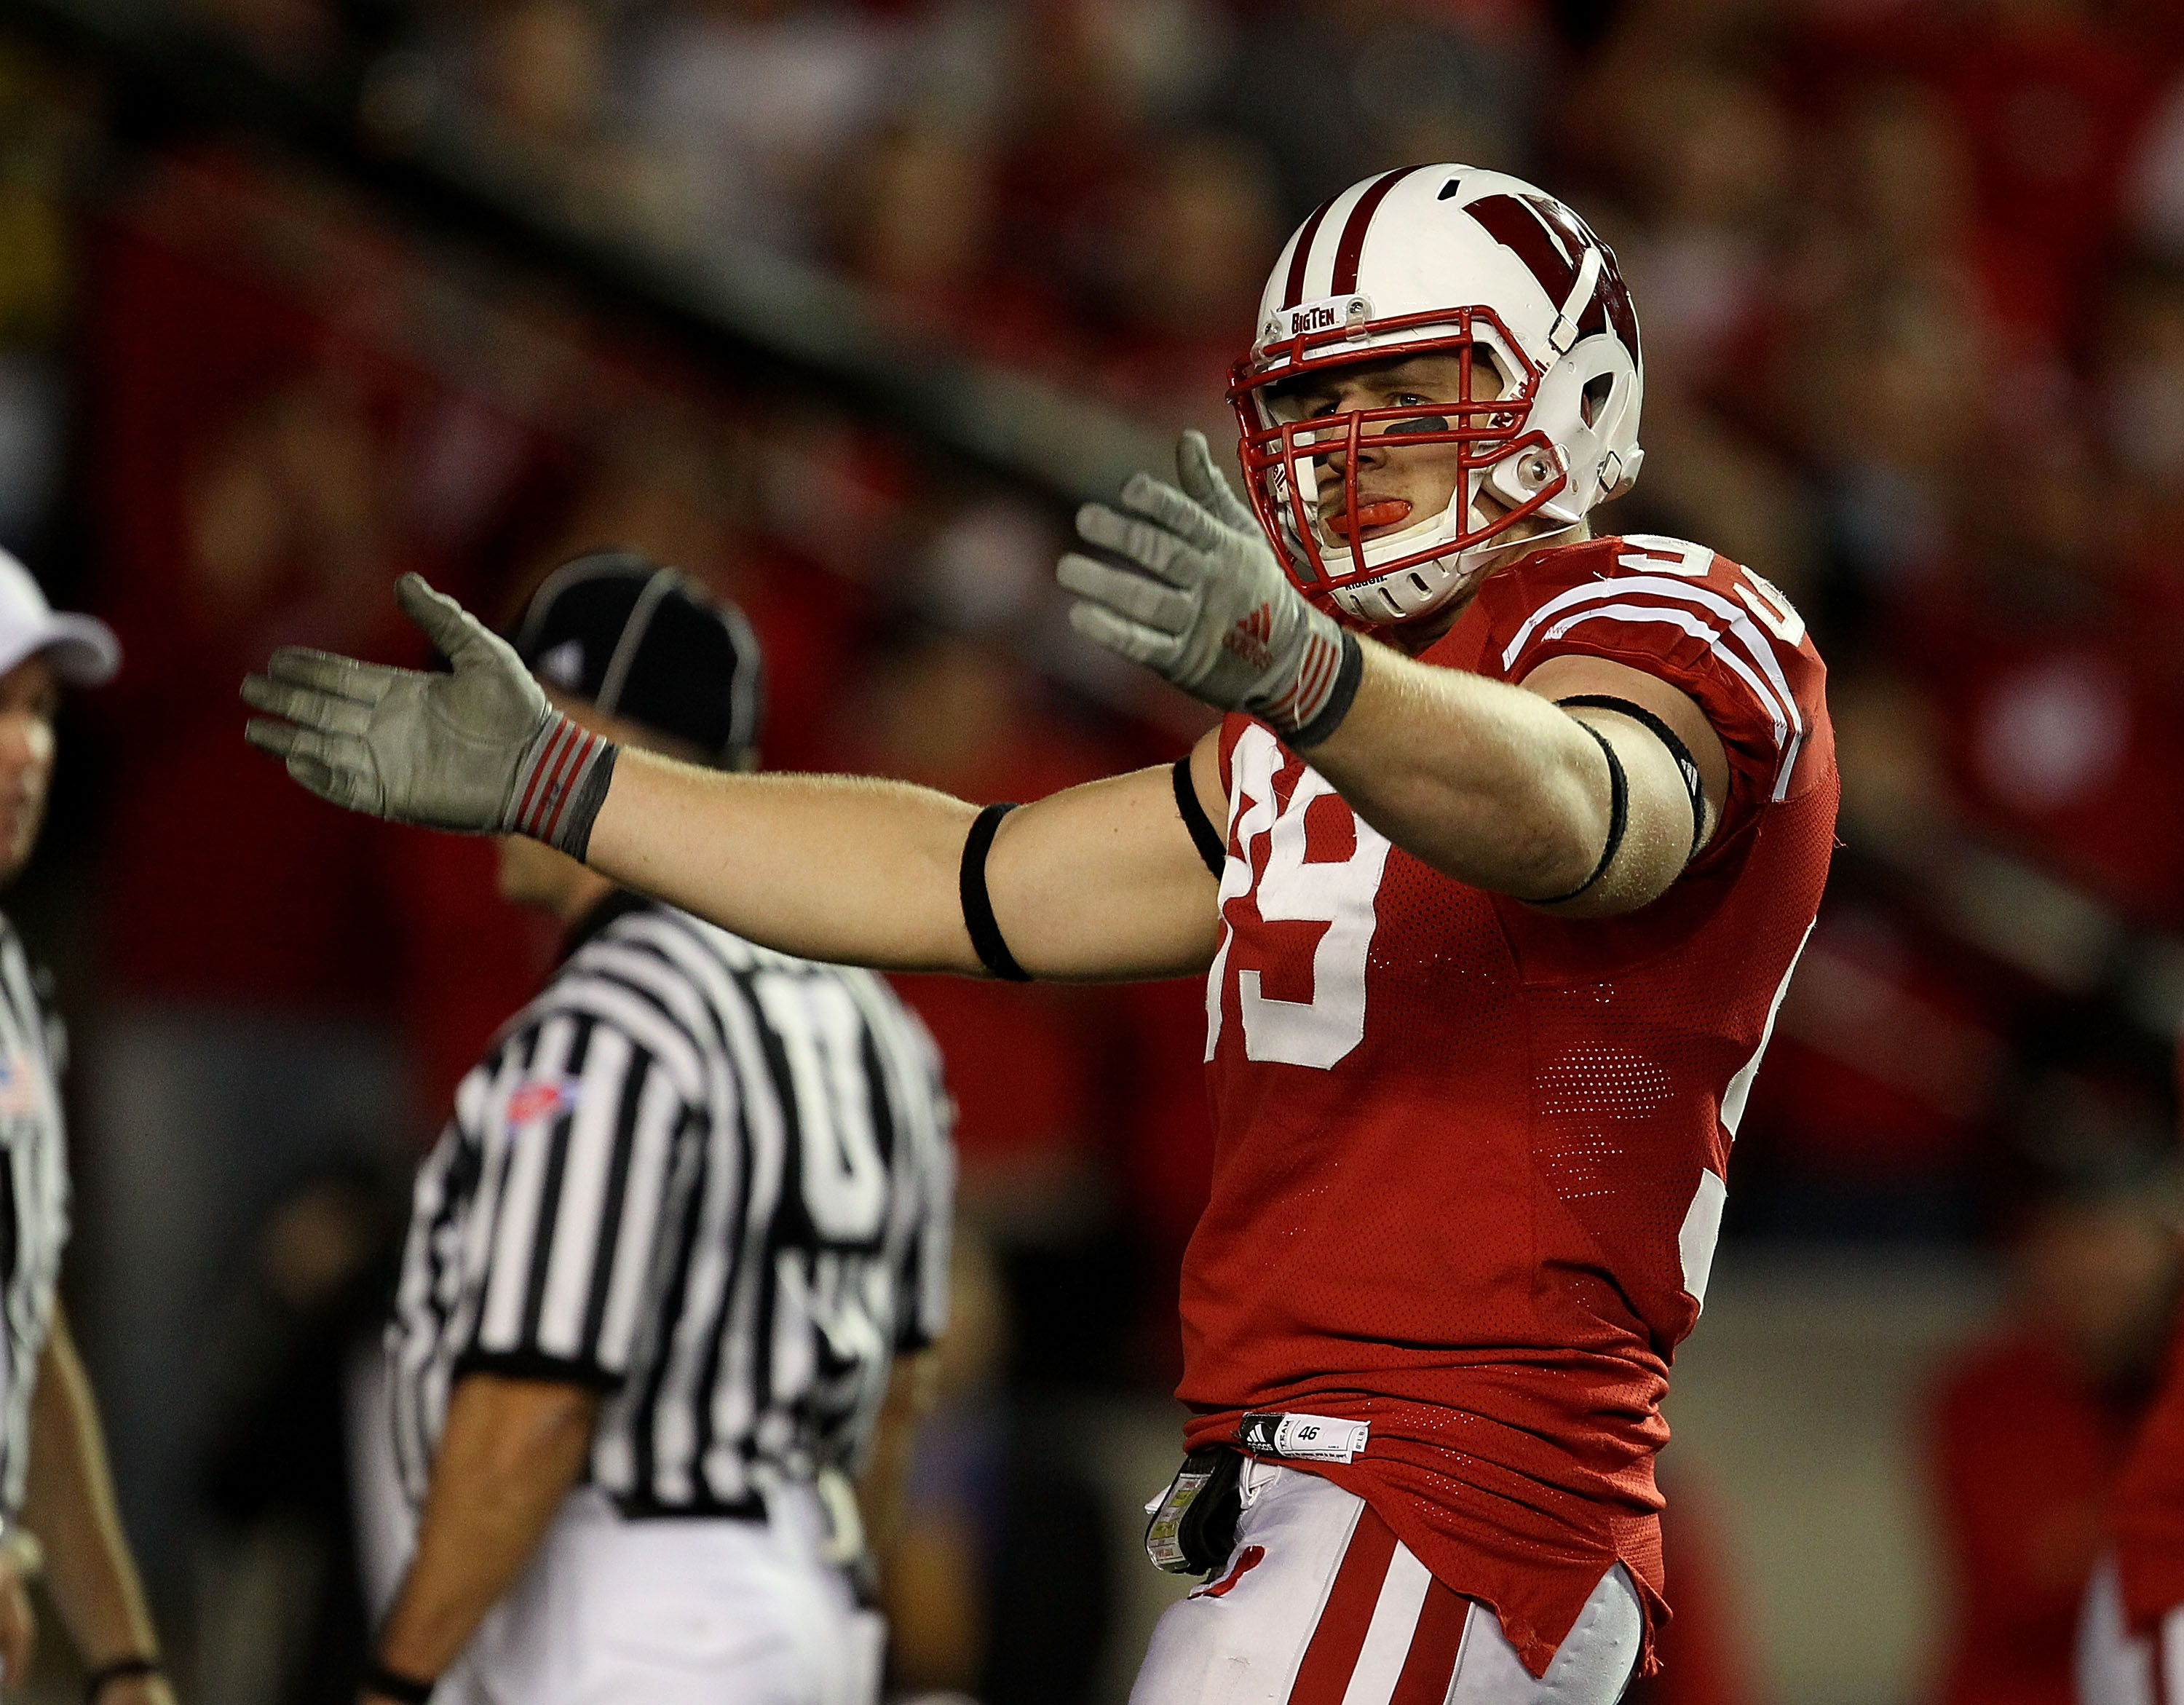 MADISON, WI - OCTOBER 16: J.J. Watt #99 of the Wisconsin Badgers encourages the crowd during a game against the Ohio State Buckeyes at Camp Randall Stadium on October 16, 2010 in Madison, Wisconsin. Wisconsin defeated Ohio State 31-18. (Photo by Jonathan